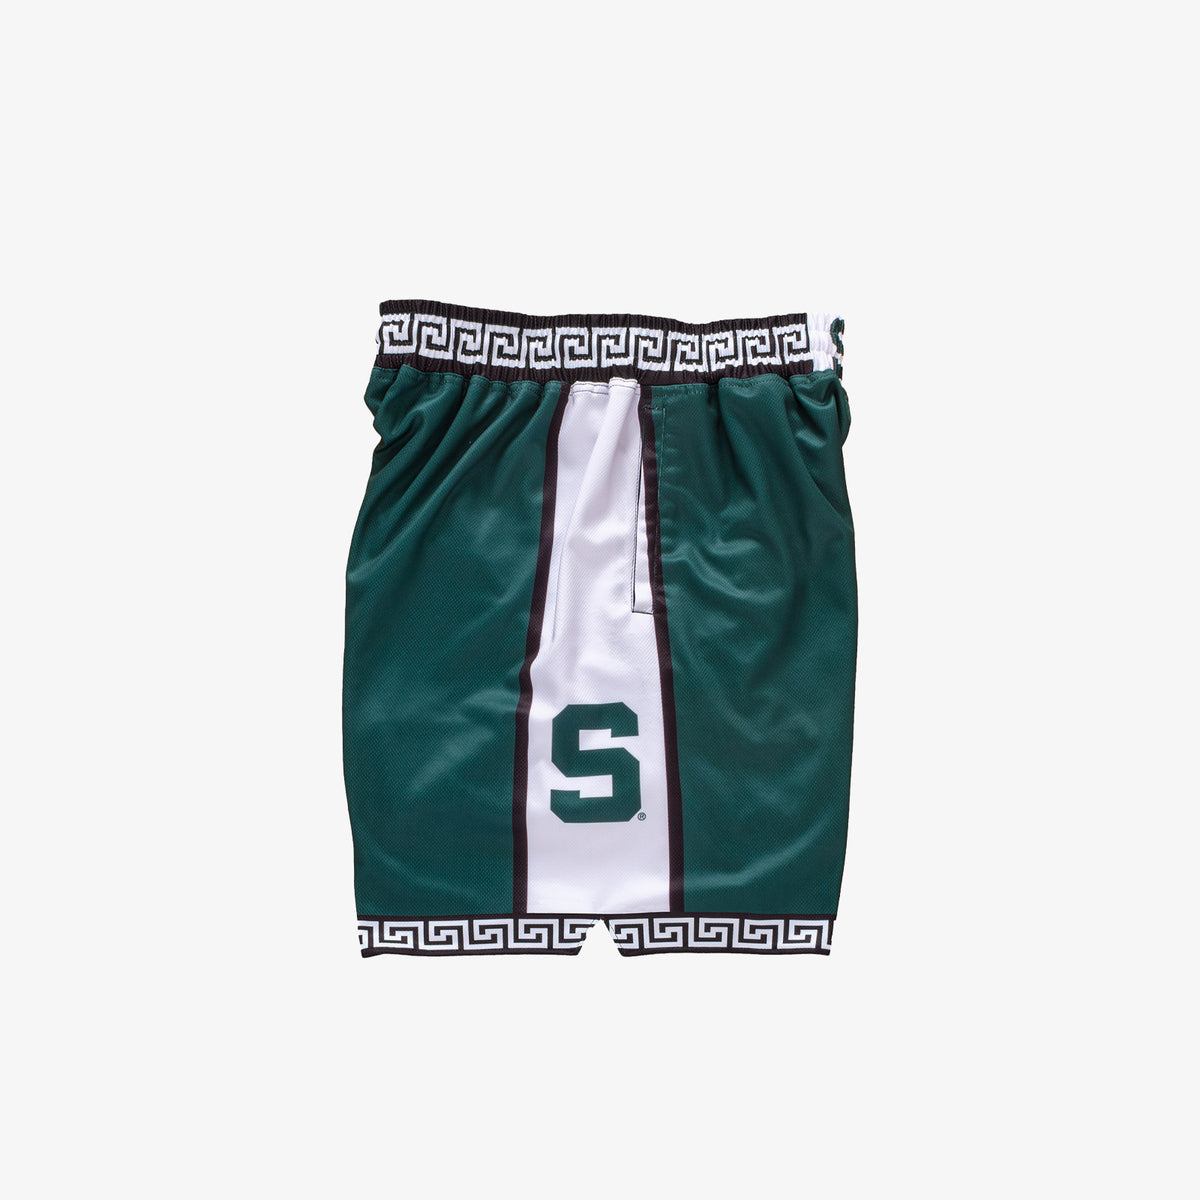 Michigan State 1999-200 Retro College Basketball Shorts - Green